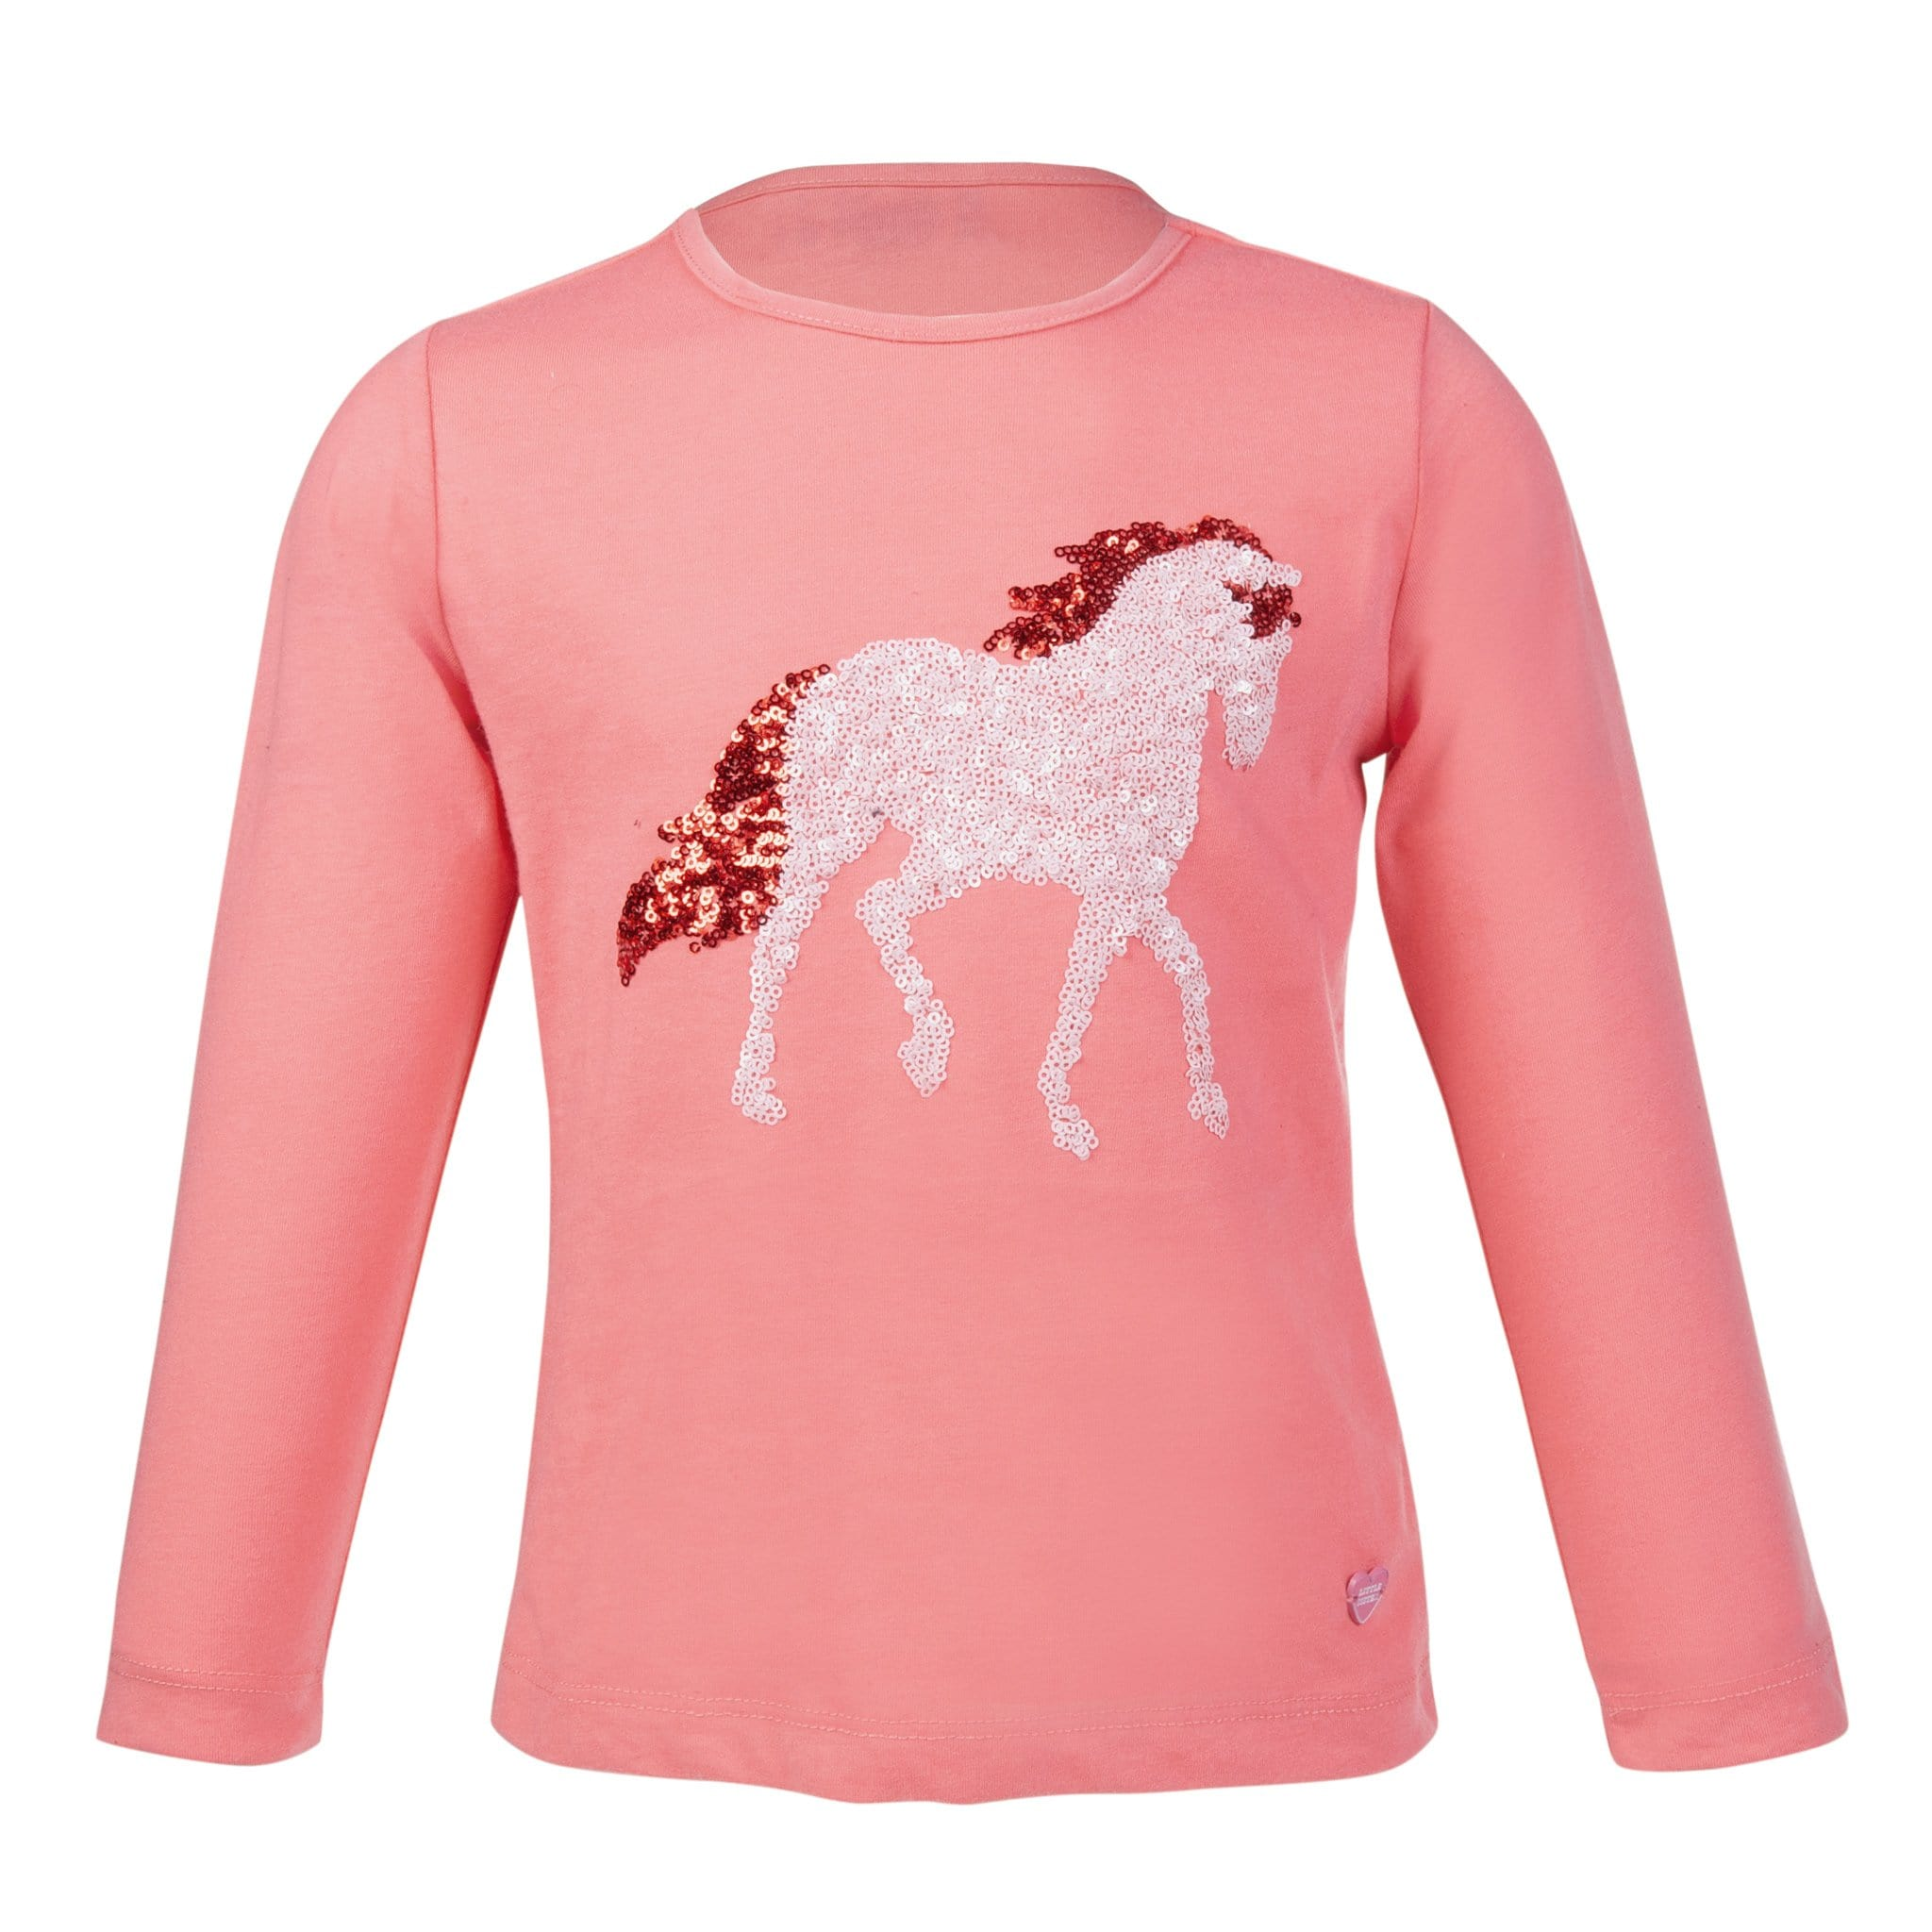 HKM Julia Children's Long Sleeve Top 11076 Pink Front